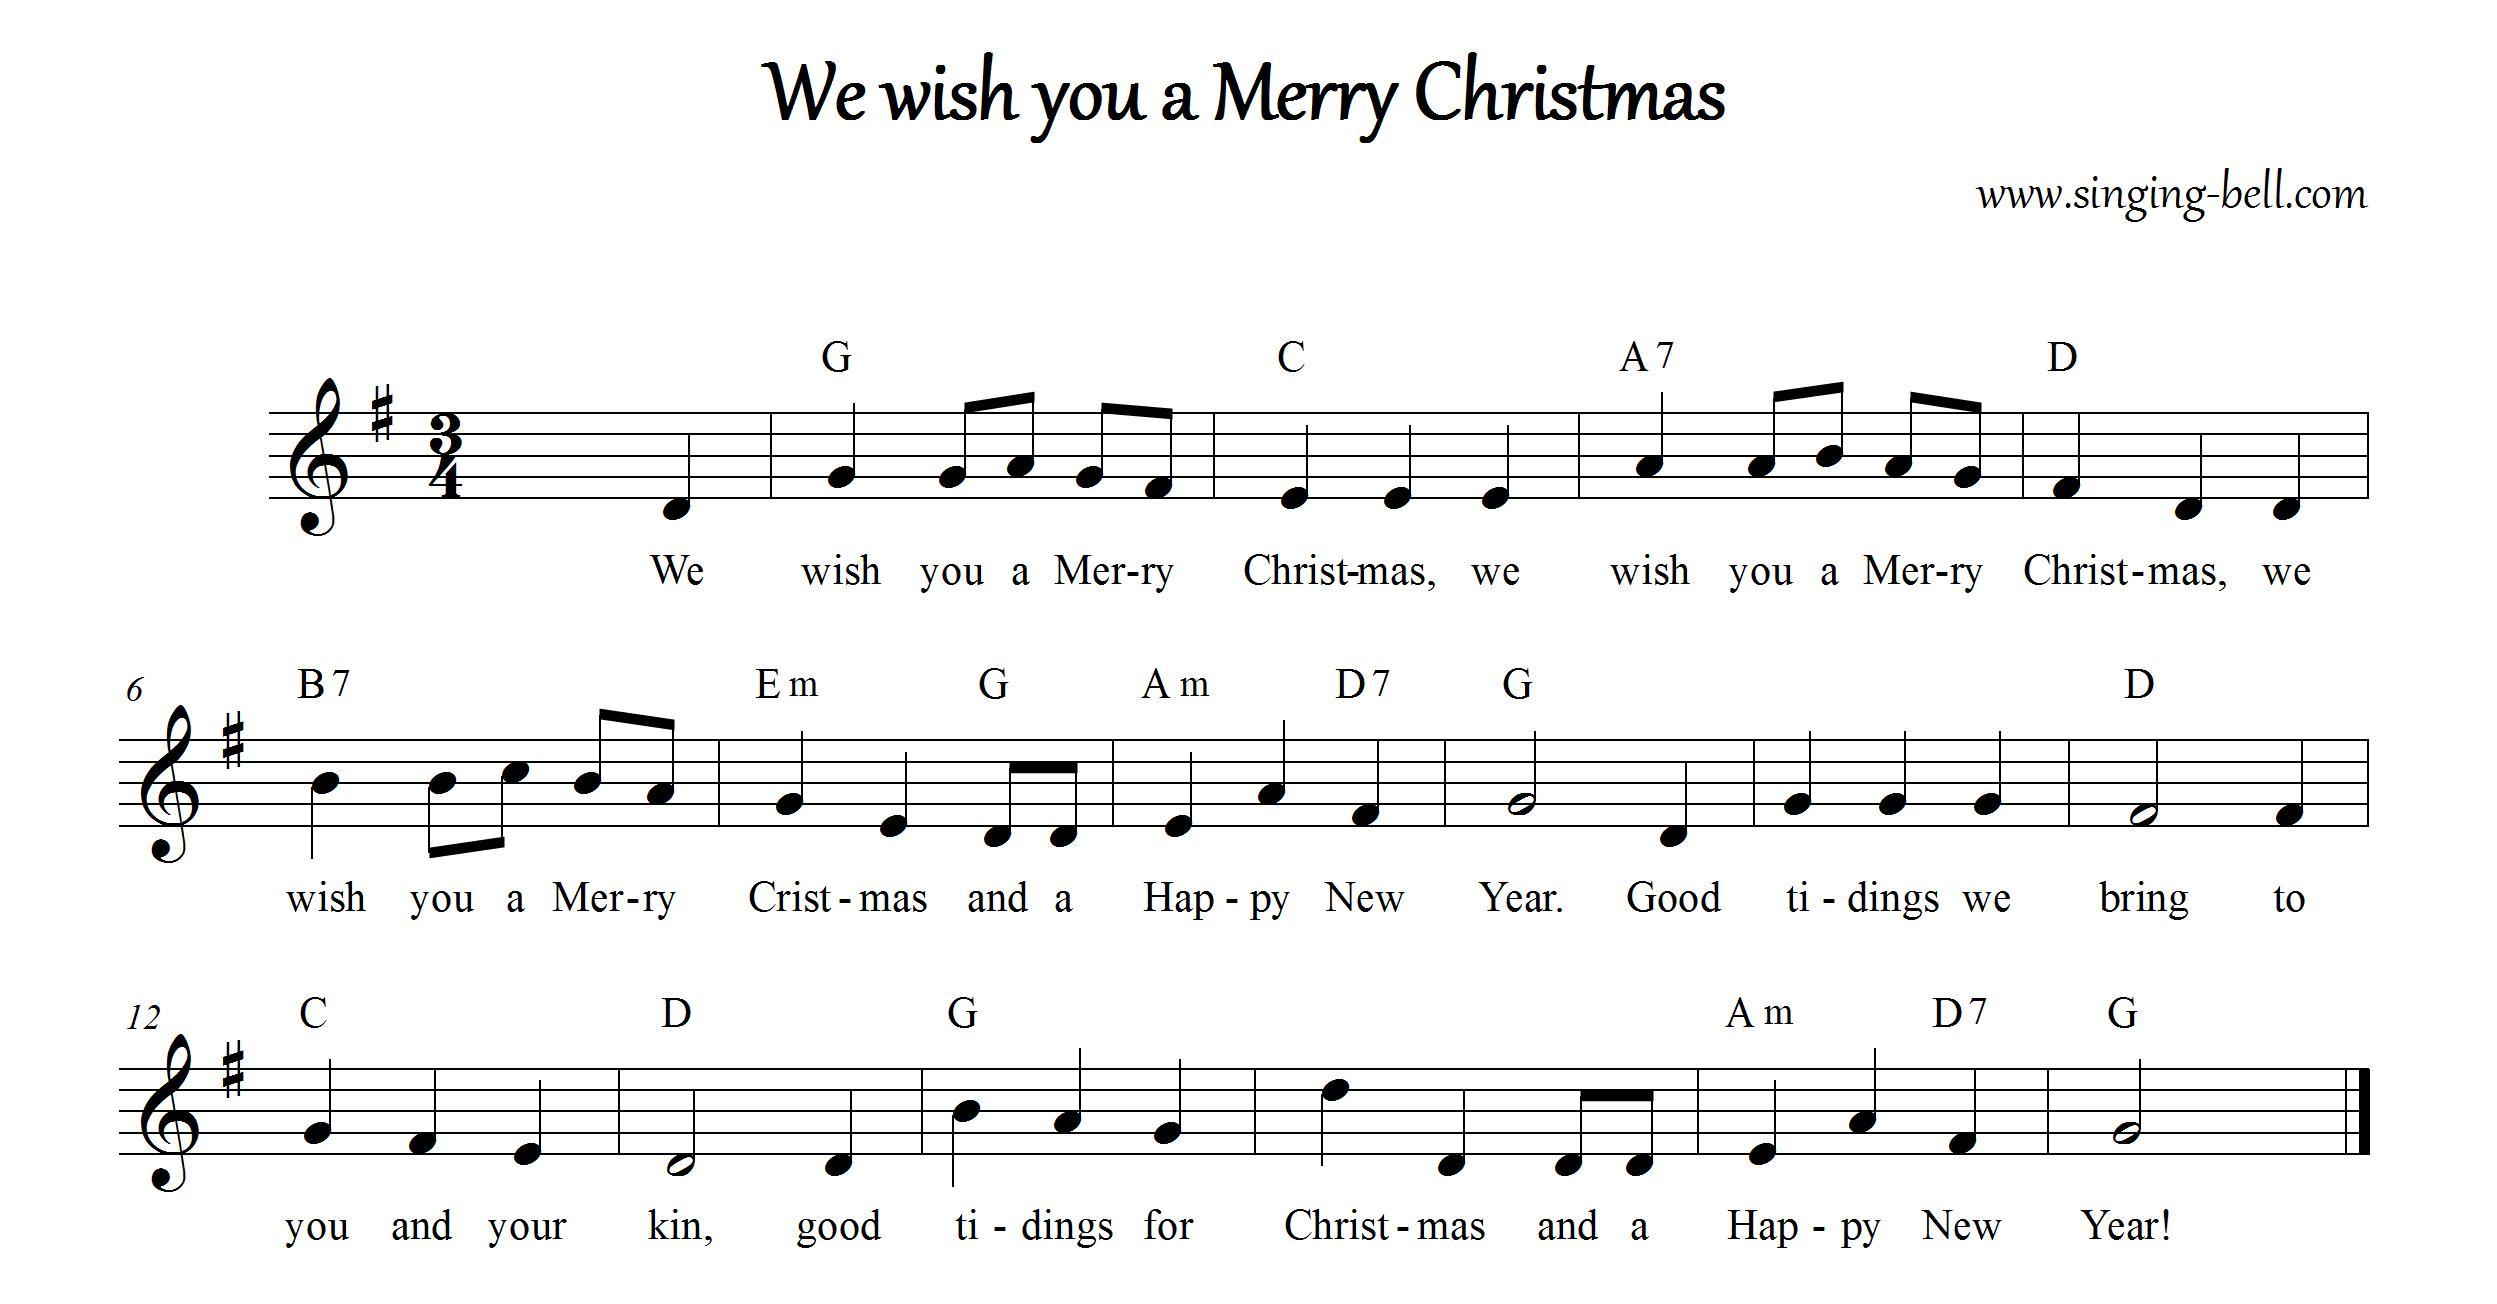 we wish you a merry christmas music score with chords